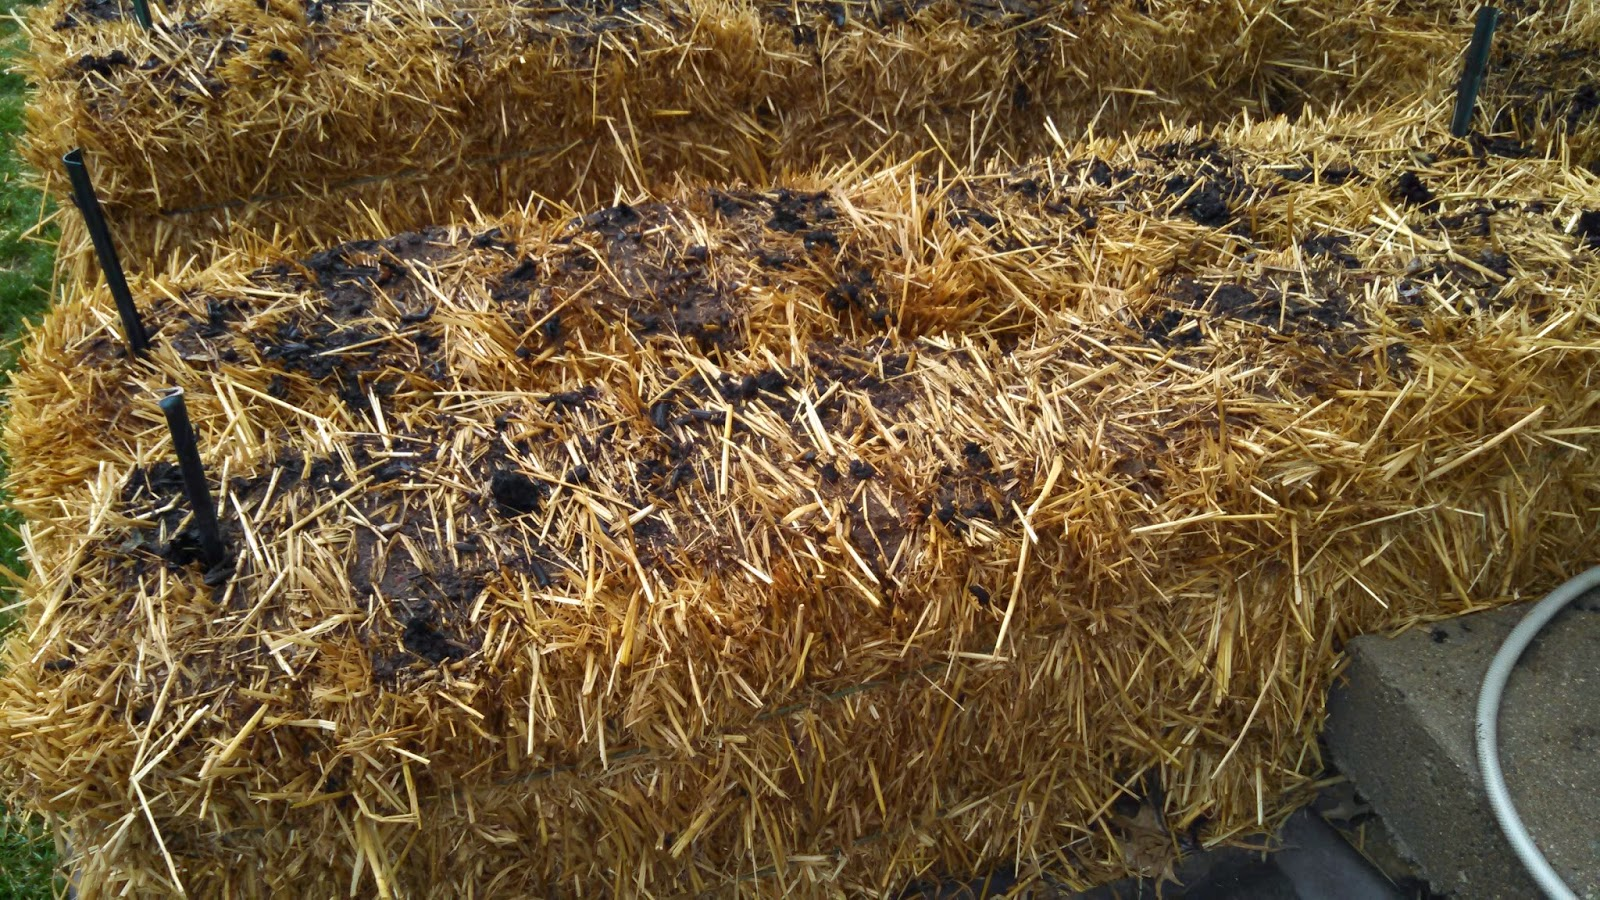 Day 5 of Straw Bale Conditioning, Before Adding More Fertilizer, Several Bales